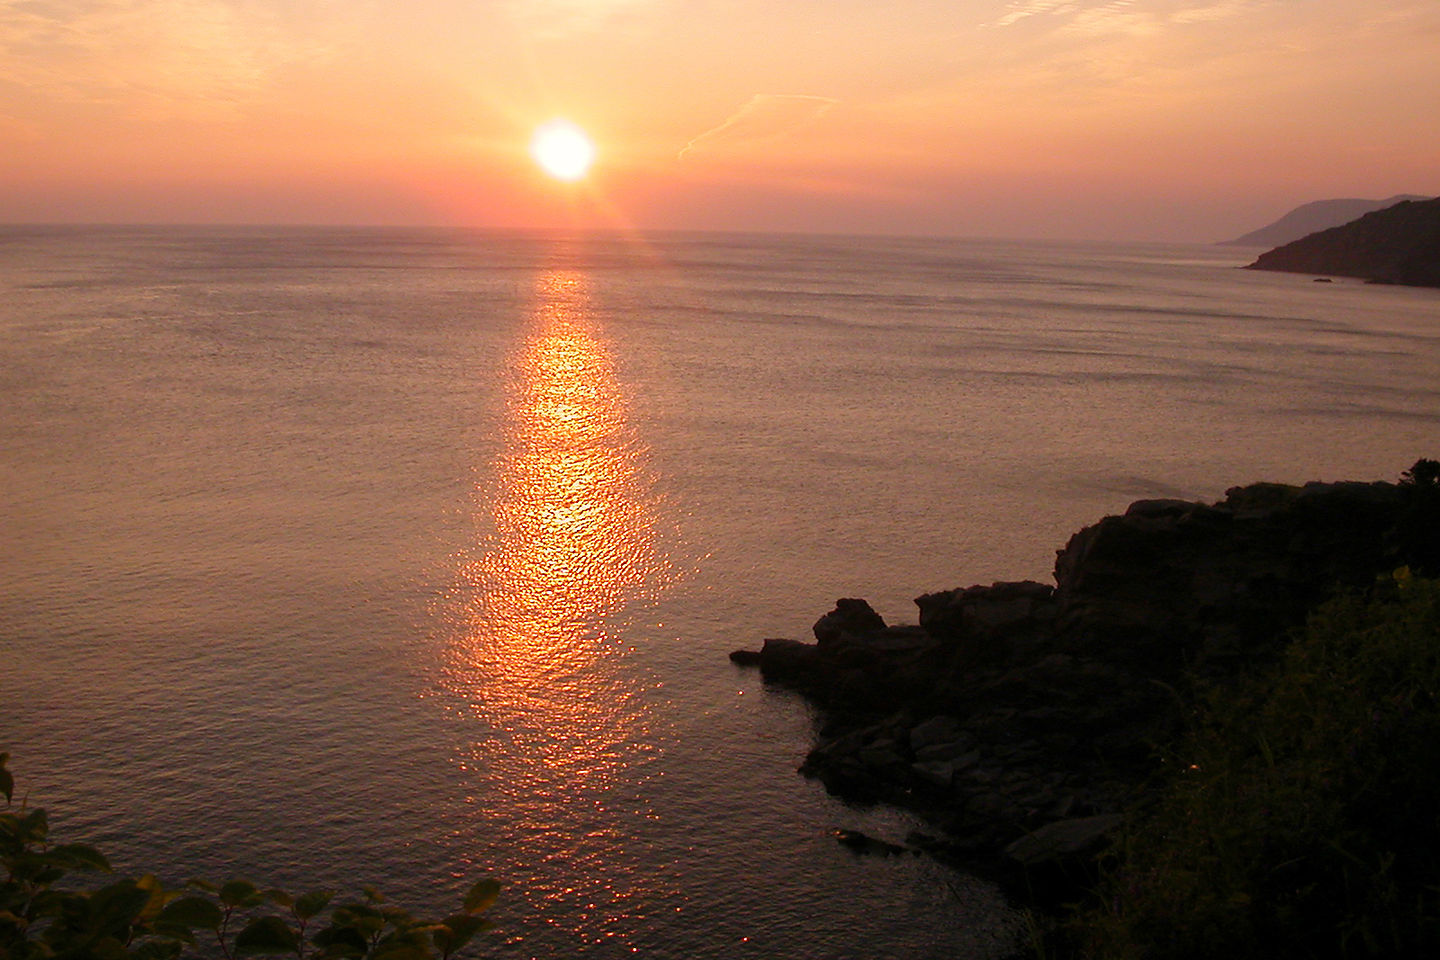 Sunrise over Gulf of St. Lawrence